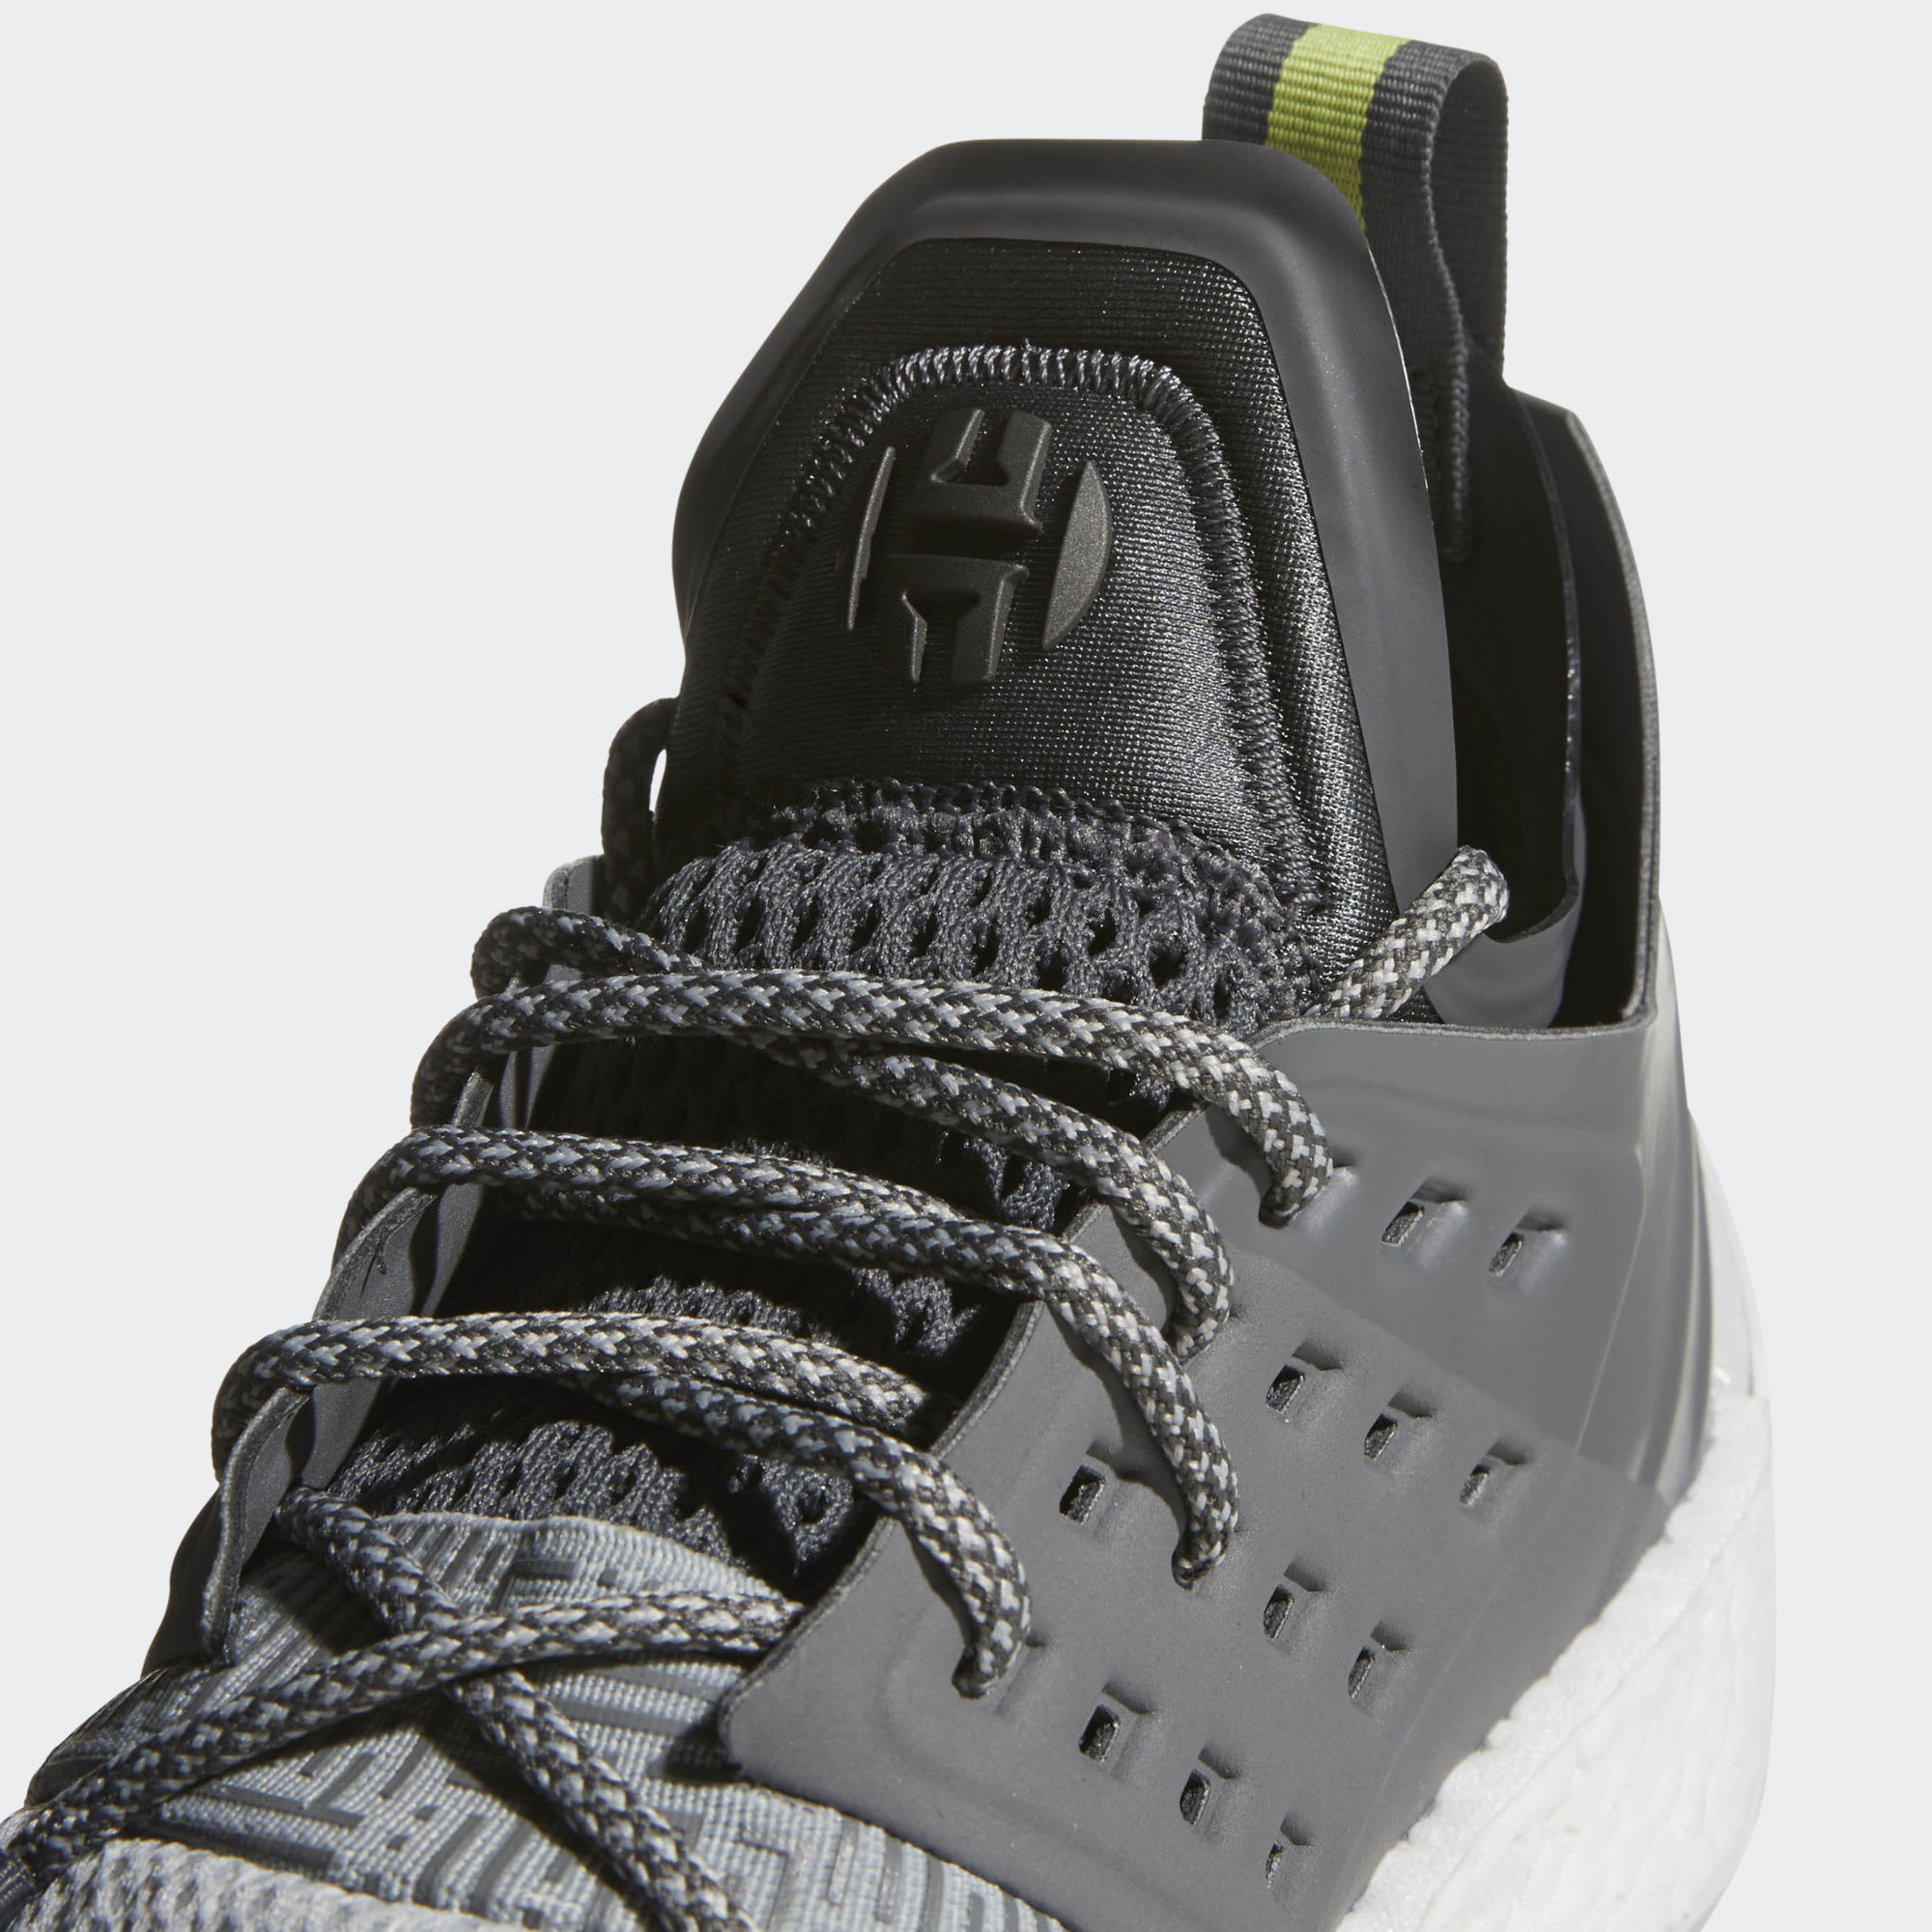 Adidas Harden Vol. 2 Concrete Grey Release Date AH2122 Tongue